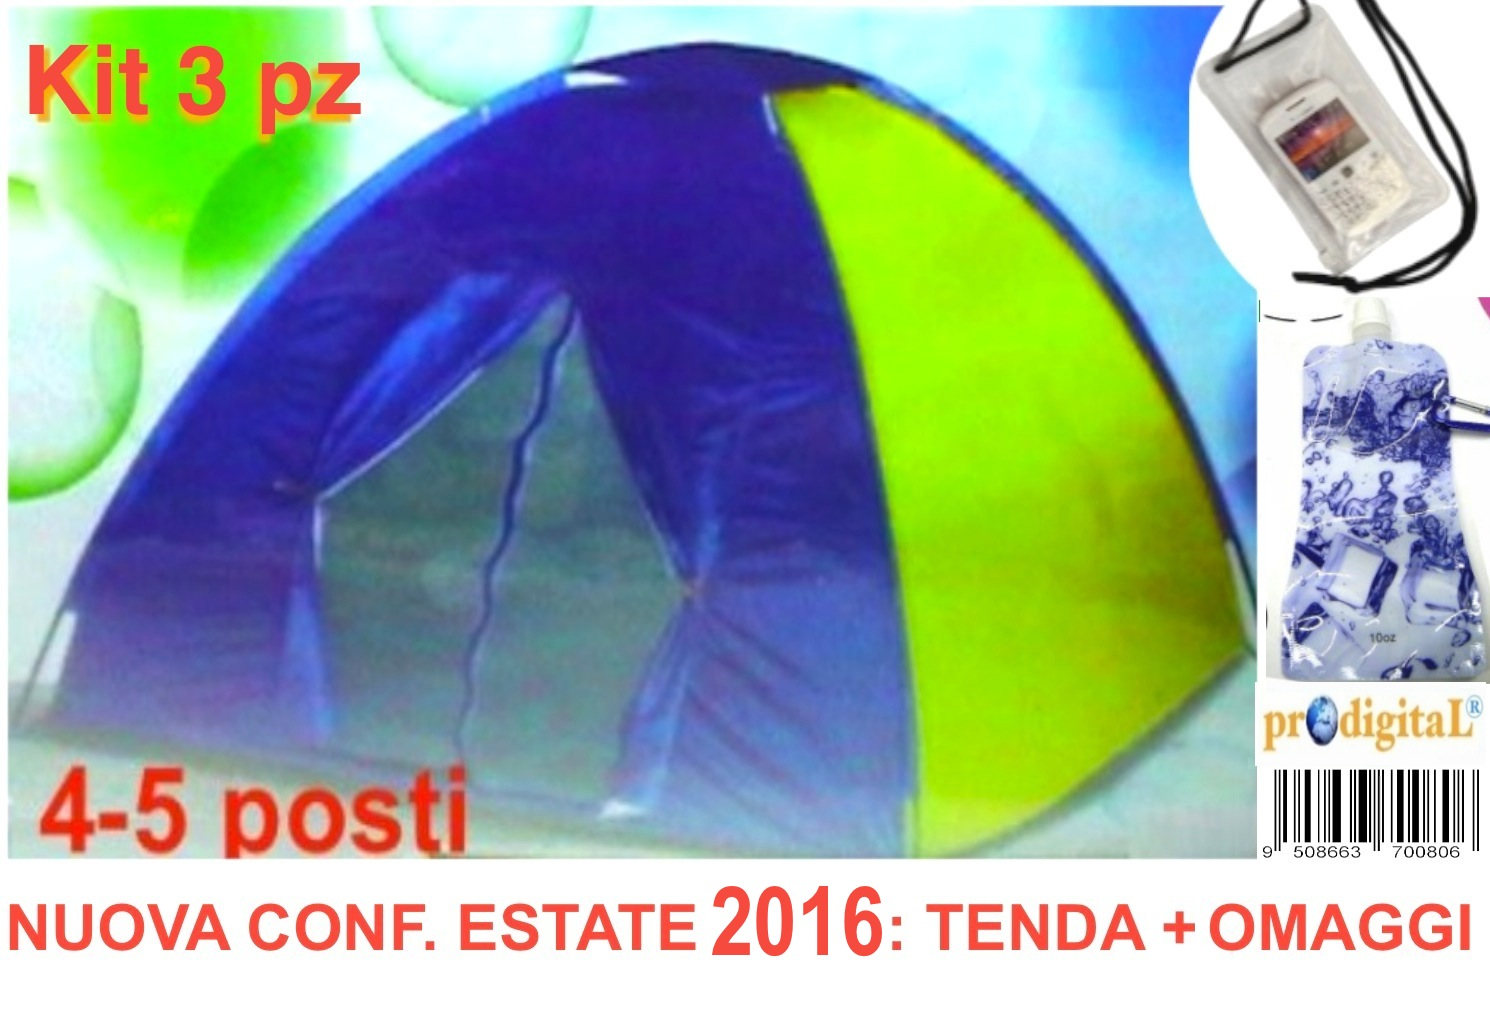 TENDA IGLOO Stile Canadese da 4 POSTi